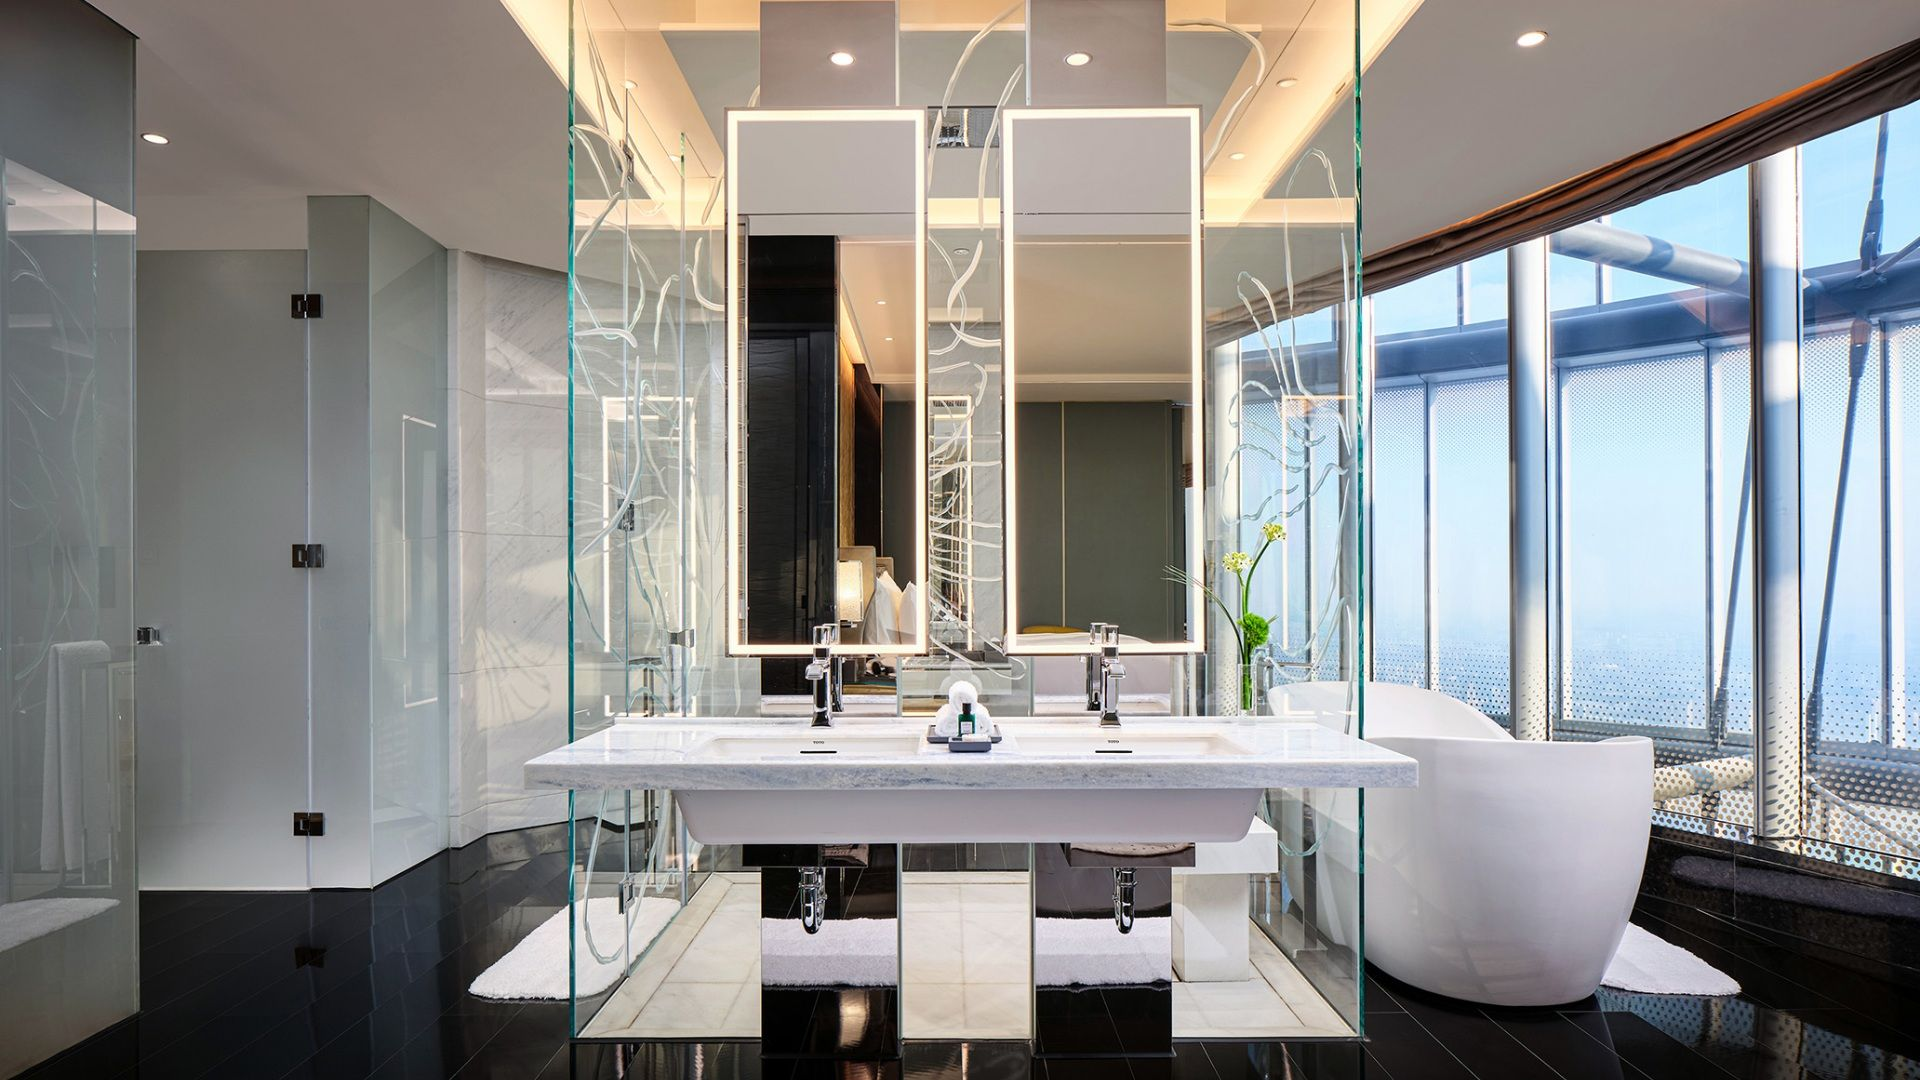 The modern glass shower and magnolia pedal bathtub have skyline views in the J Suite at the J Hotel Shanghai Tower.